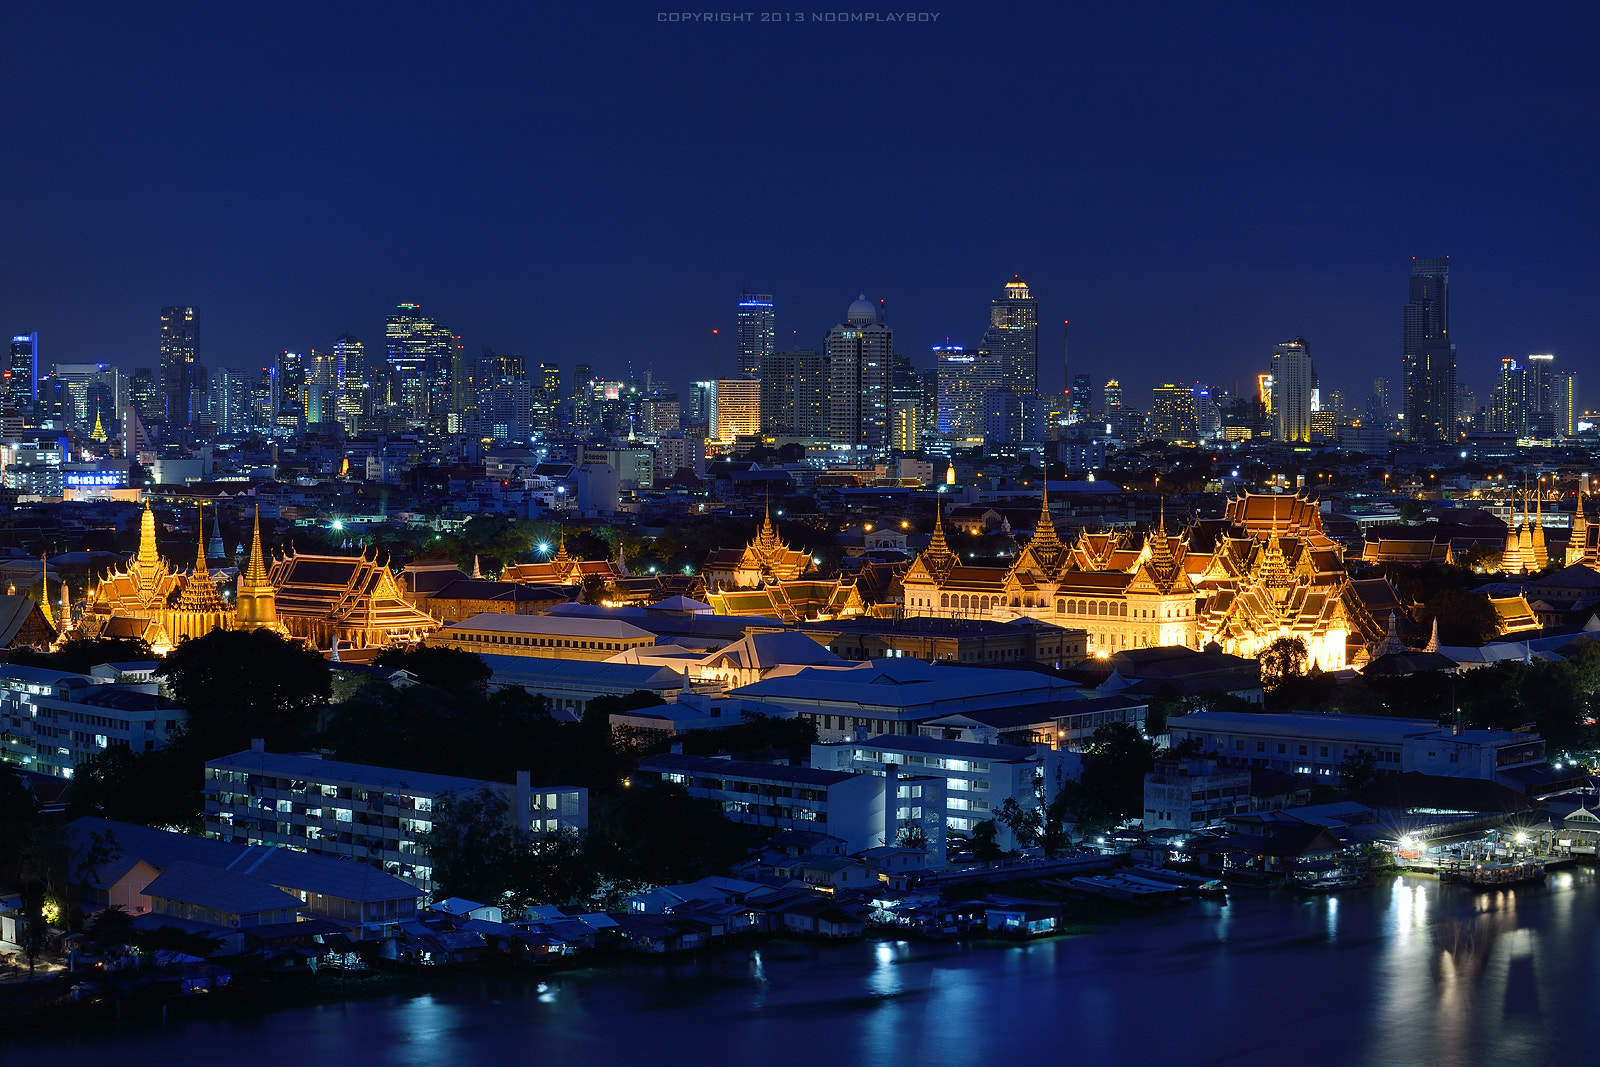 Photograph The Grand Palace and The Emerald Buddha Temple by noomplayboy  on 500px